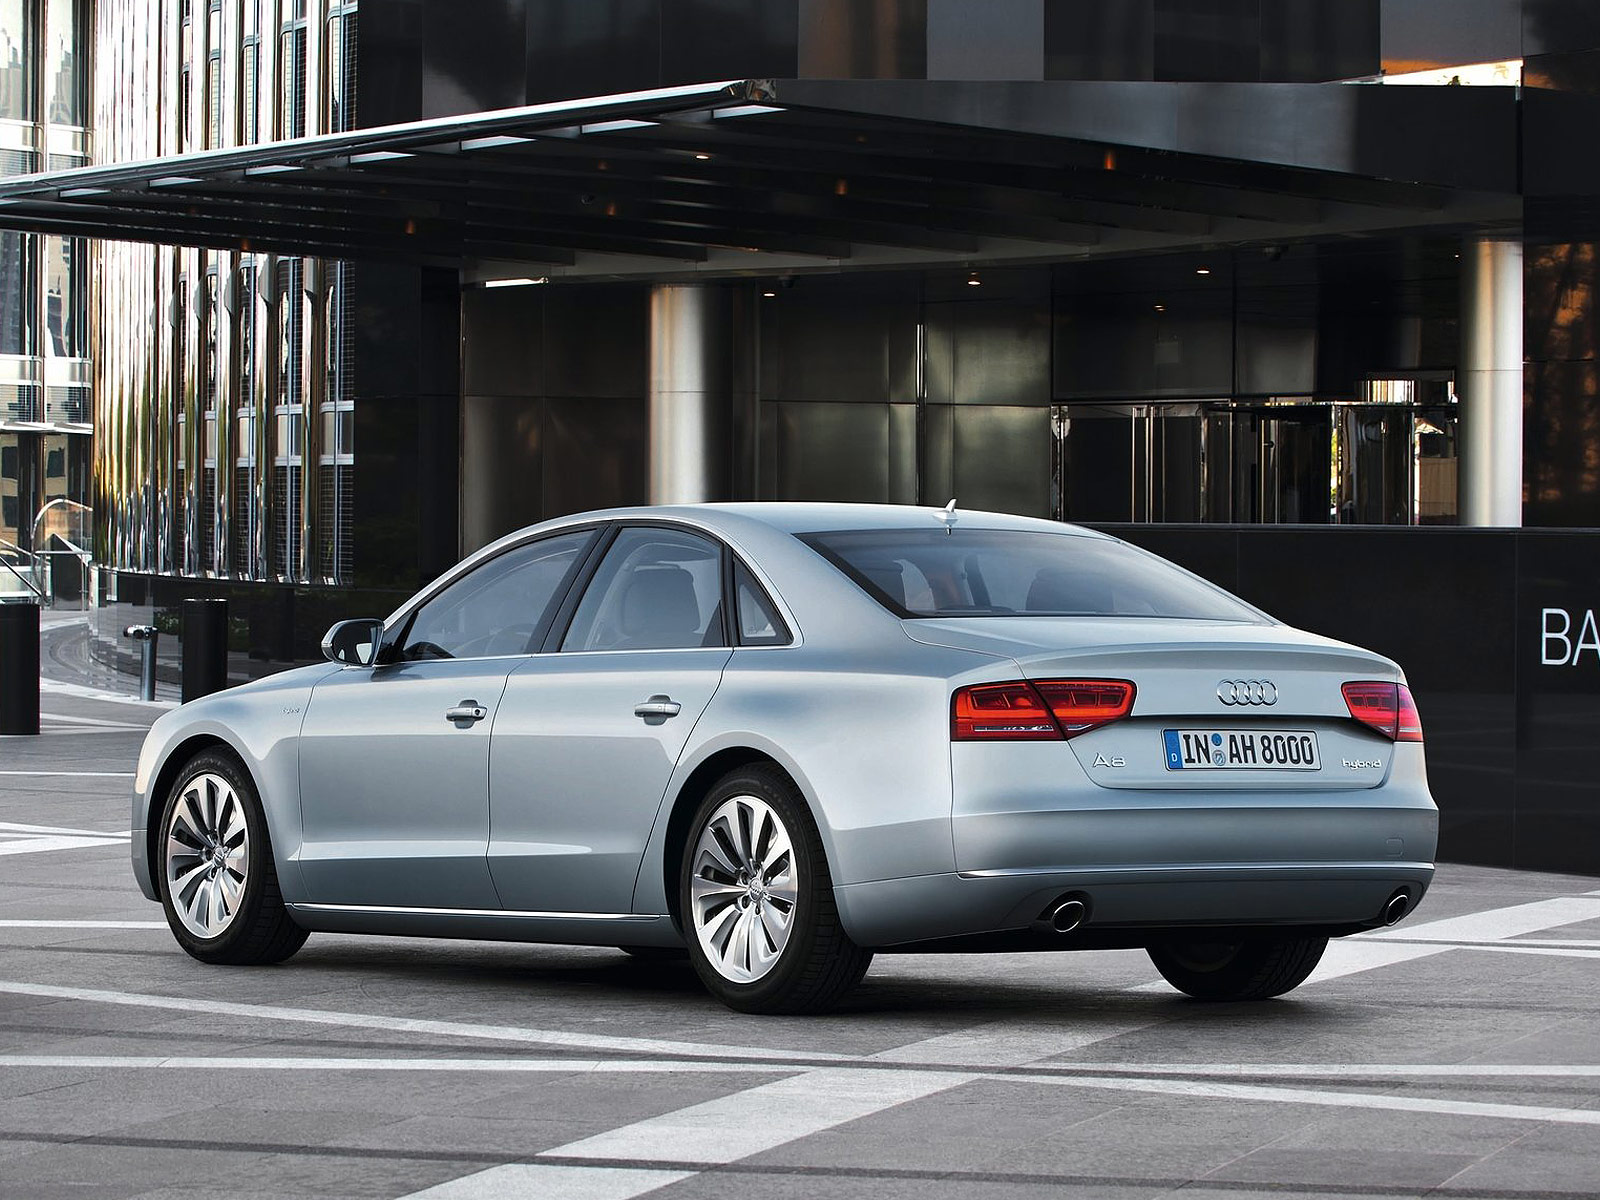 2013 Audi A8 Hybrid Car Accident Wallpaper